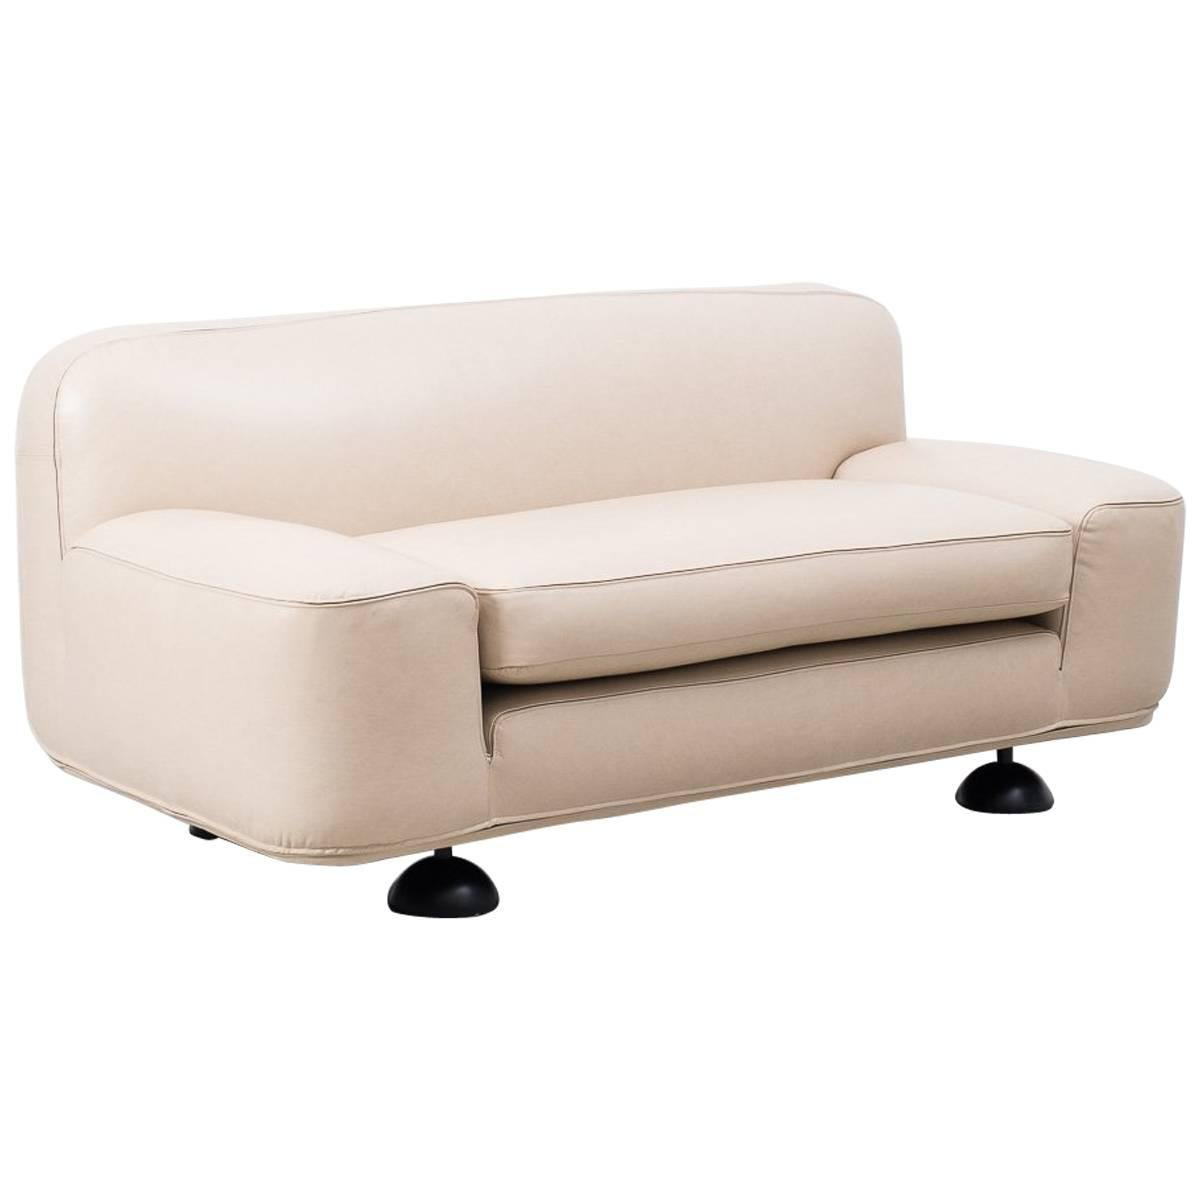 Franco Poli Altopiano Two Seat Leather Sofa For Sale